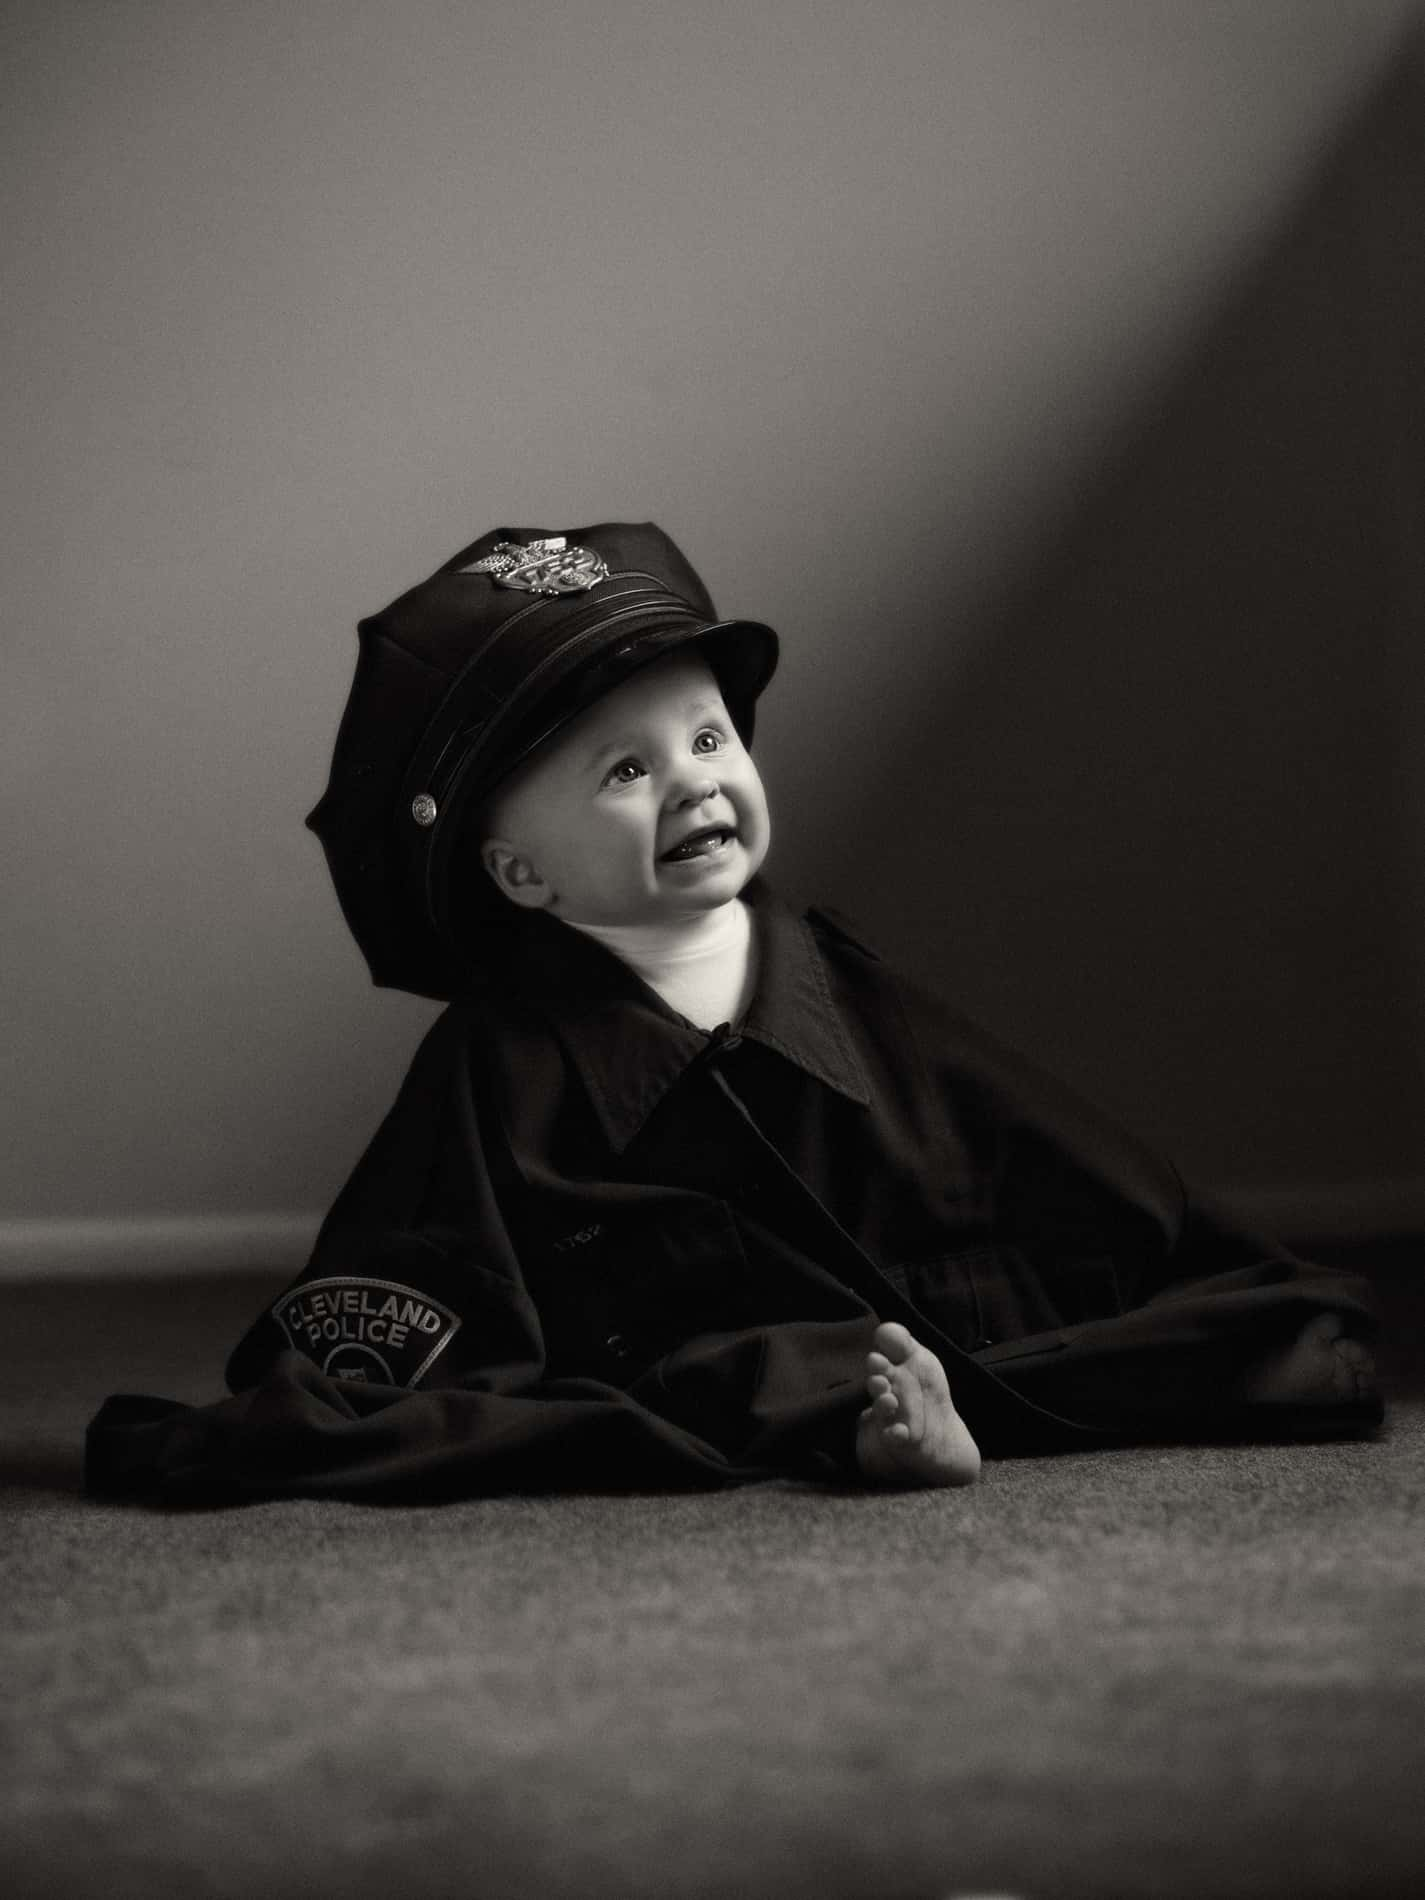 picture of baby in police hat